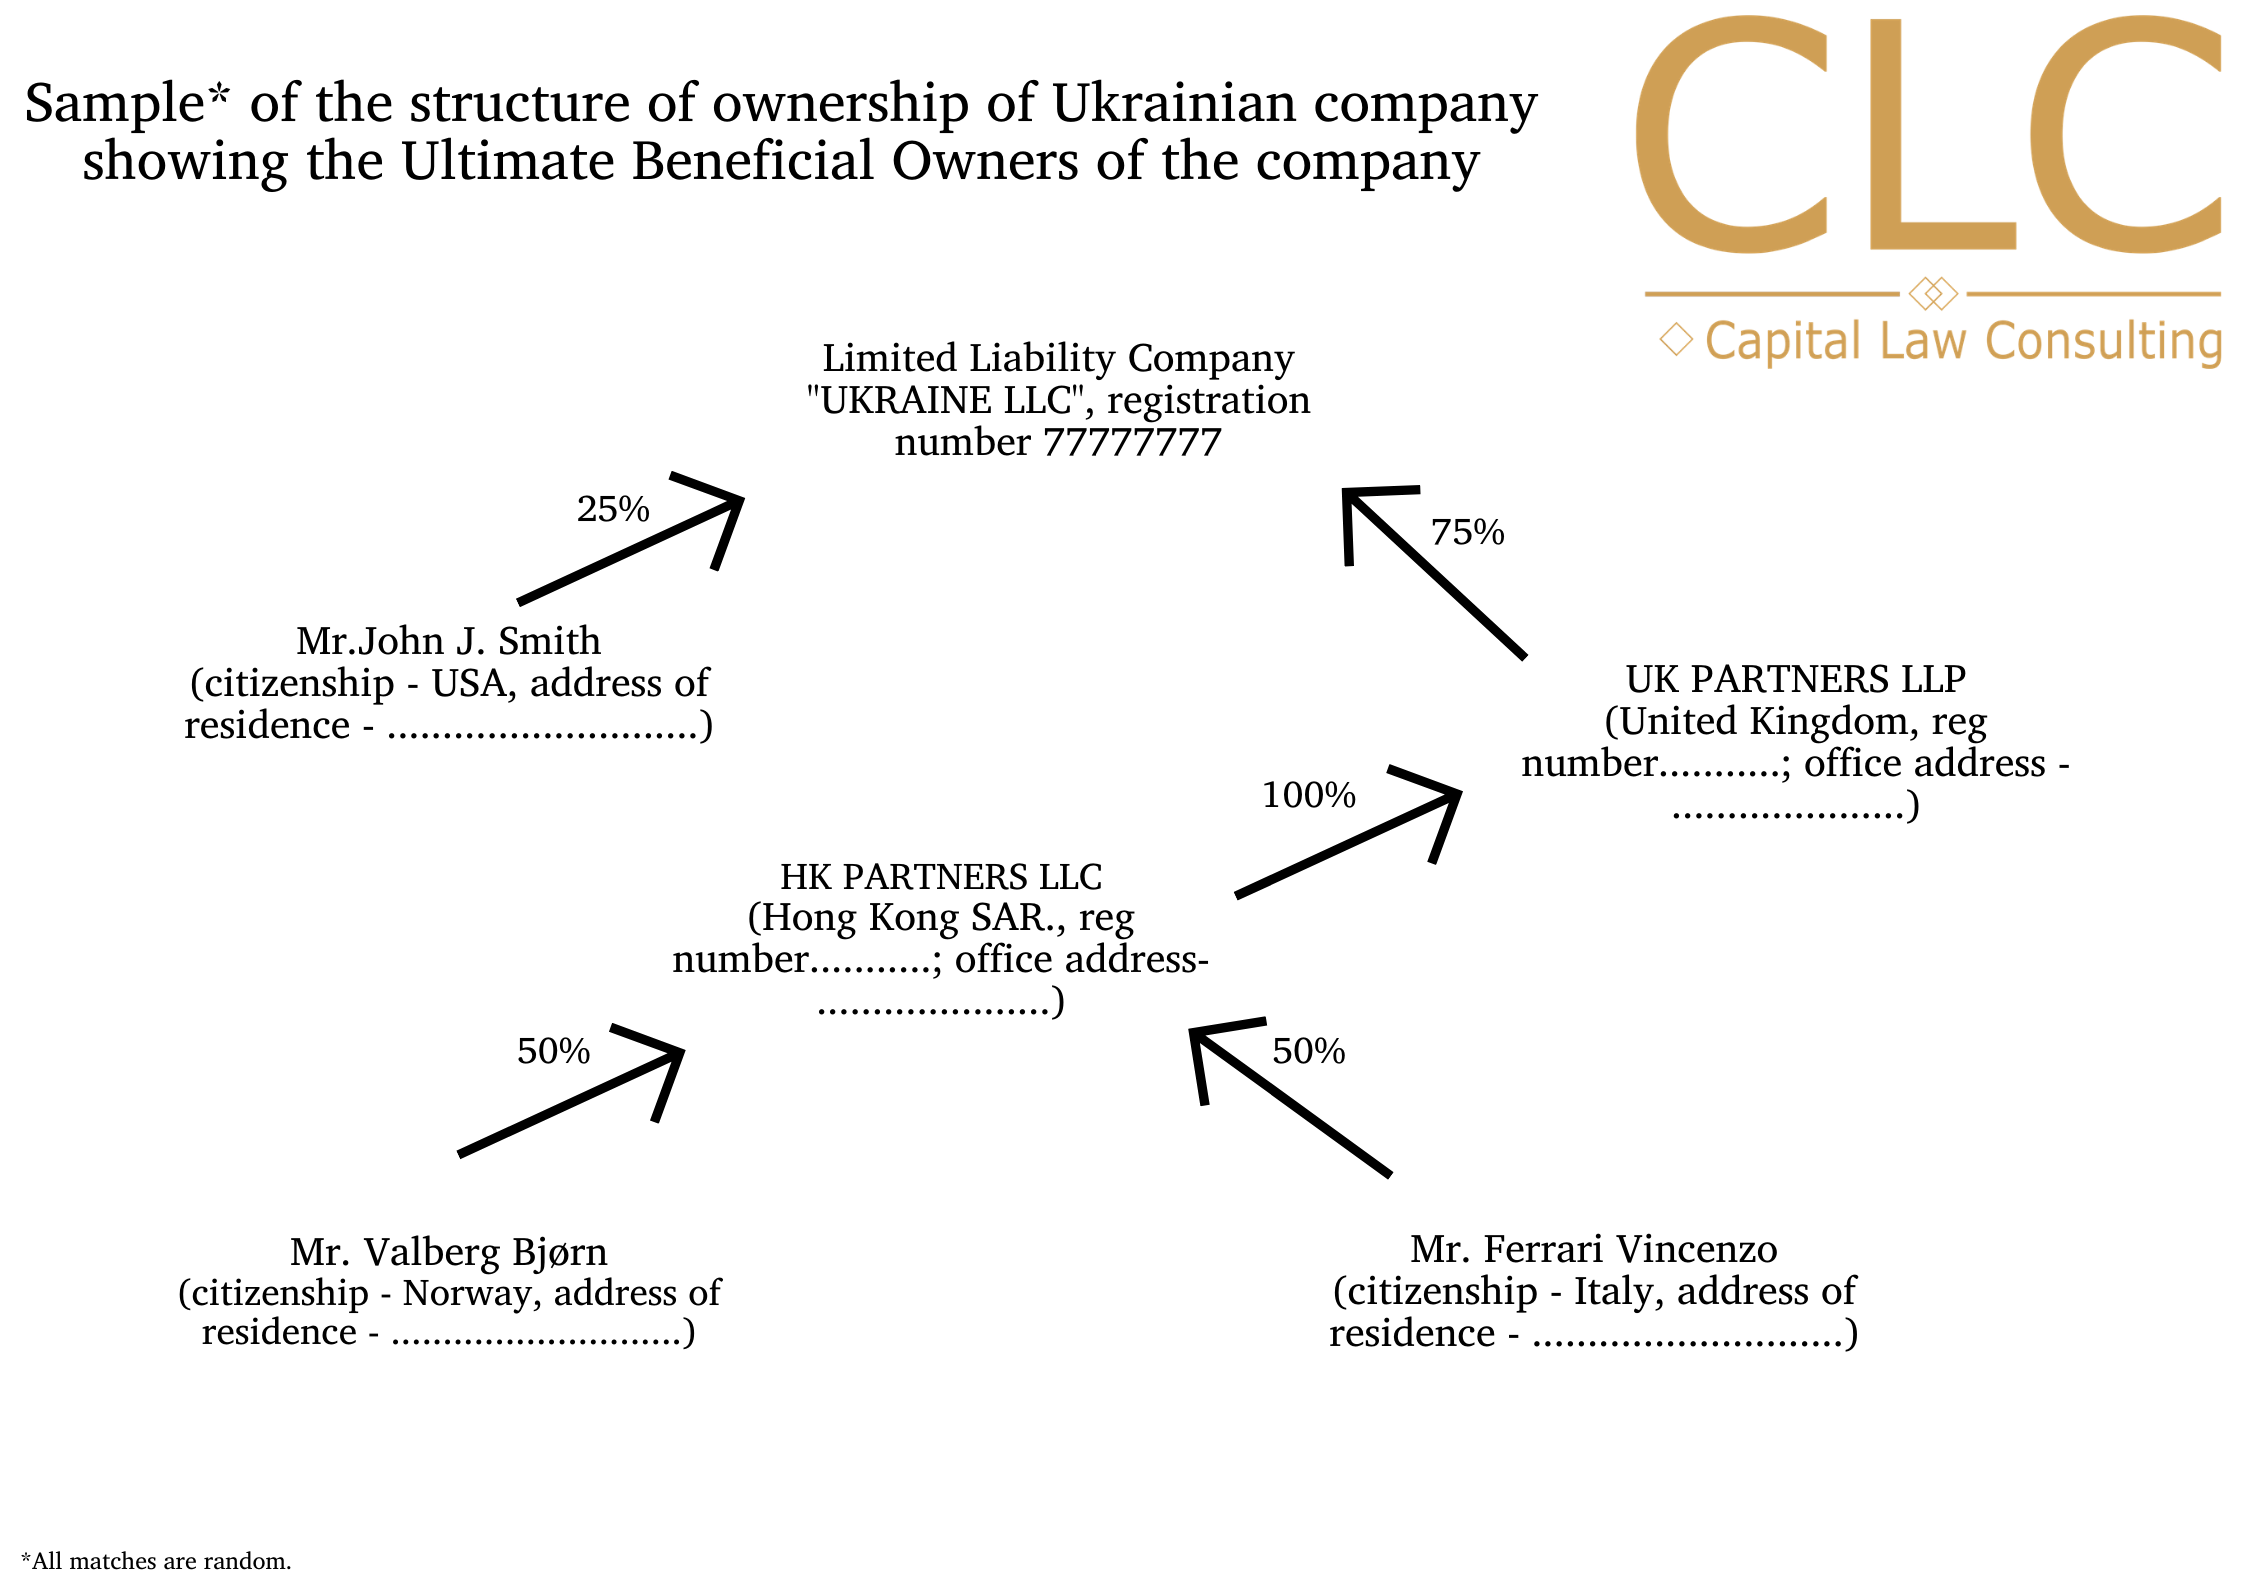 ubo ukraine company structure ownership